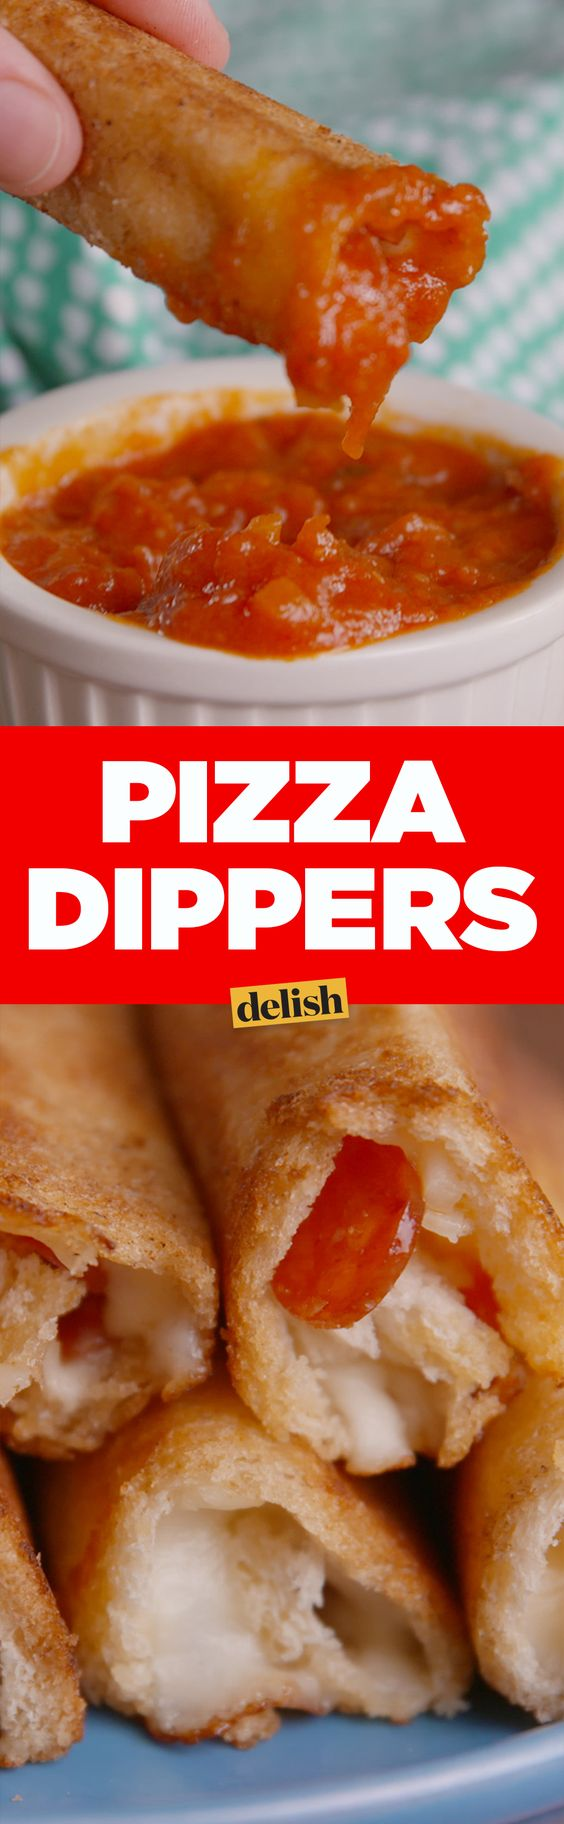 Pizza + grilled cheese = these amazing Pizza Dippers. Get the recipe on Delish.com.